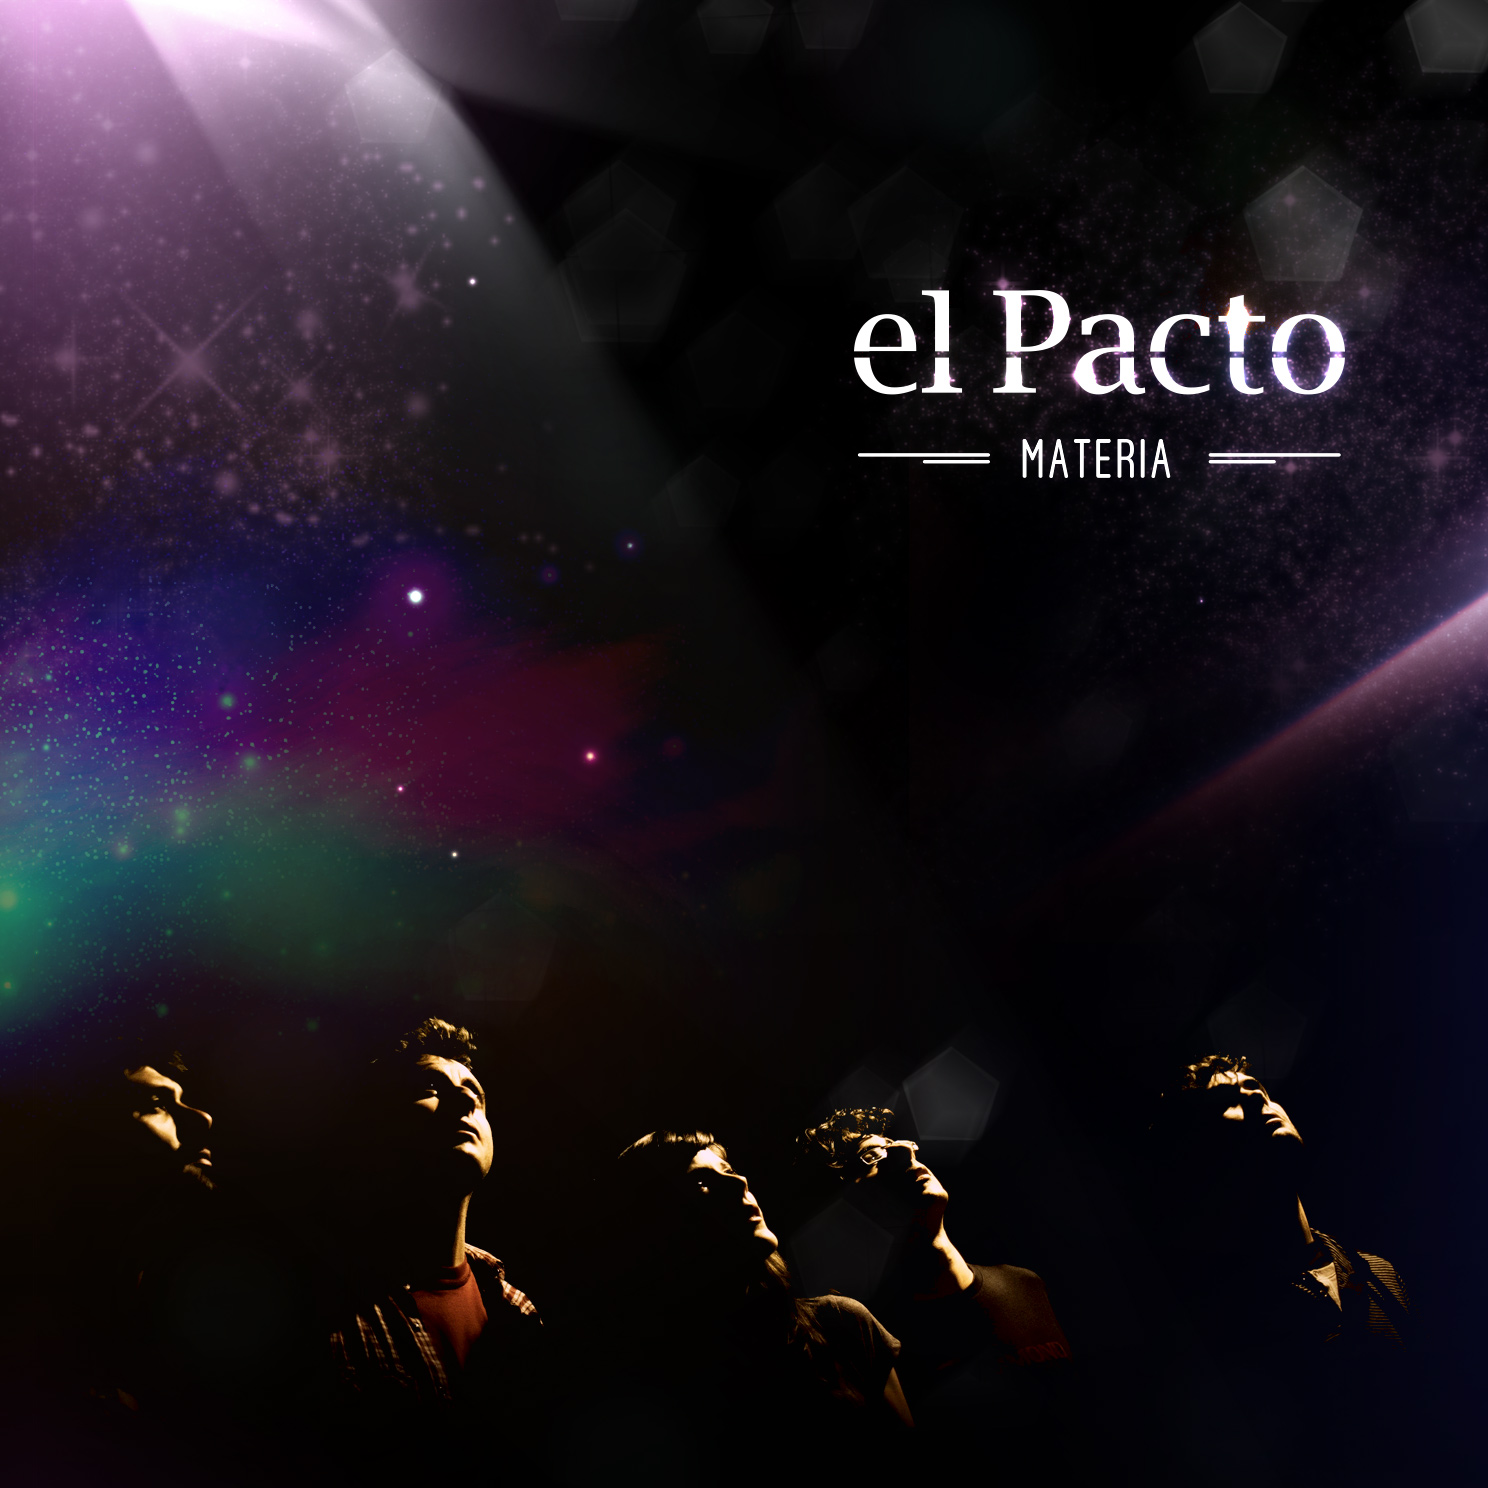 2012.01.cd_elpacto.materia.thumb1